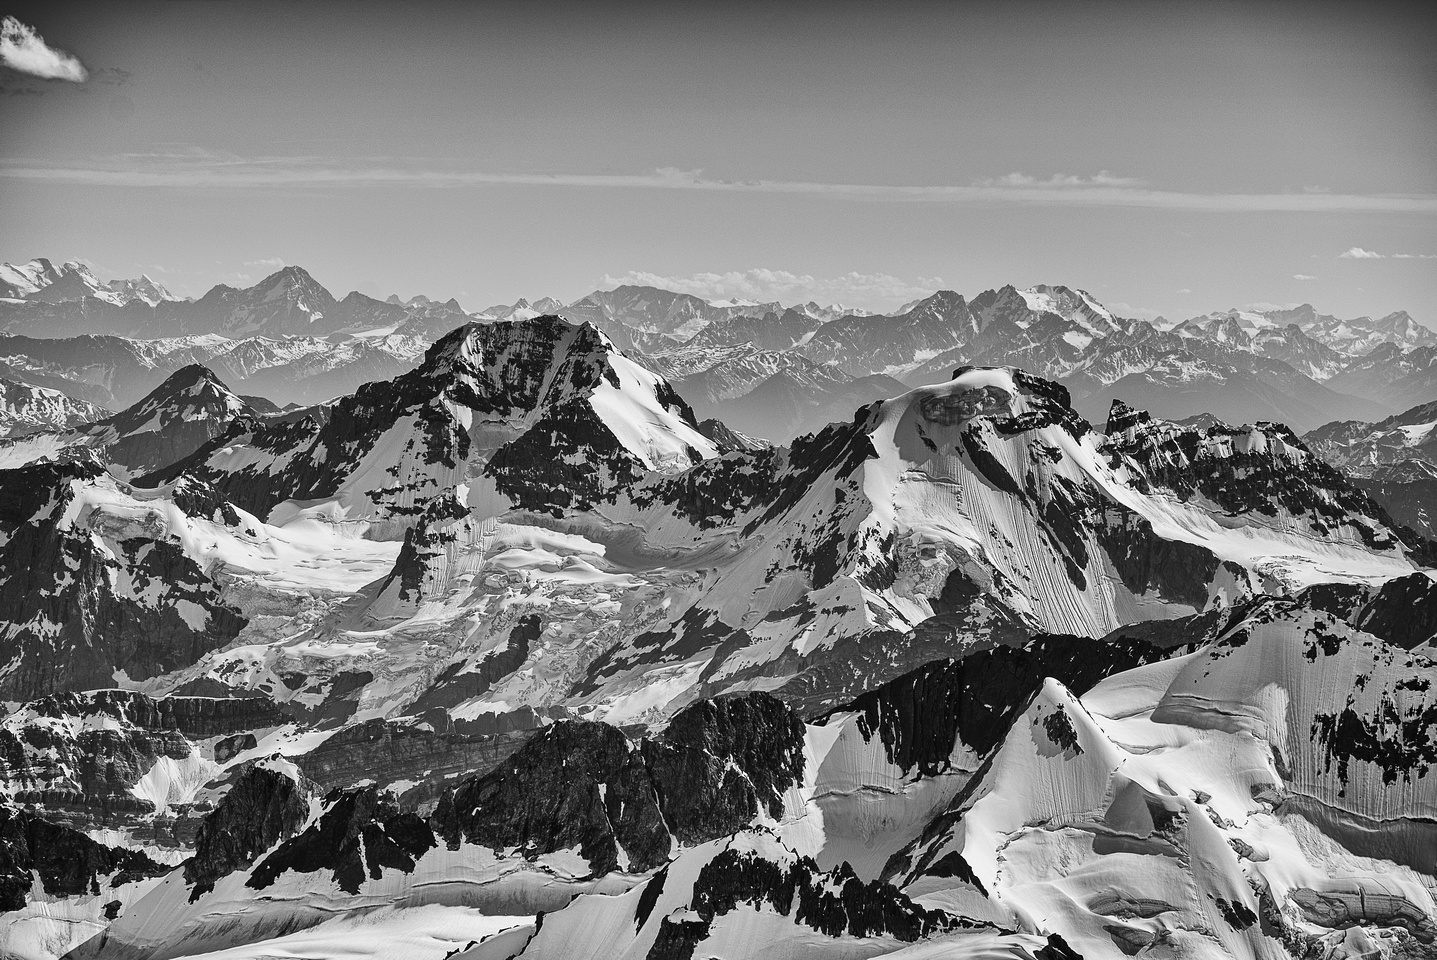 Rostrum Peak and Bush Mountain (triangular face in front of Bush) on the left of center and Icefall Peak on the right look a bit smaller now that we're above them.